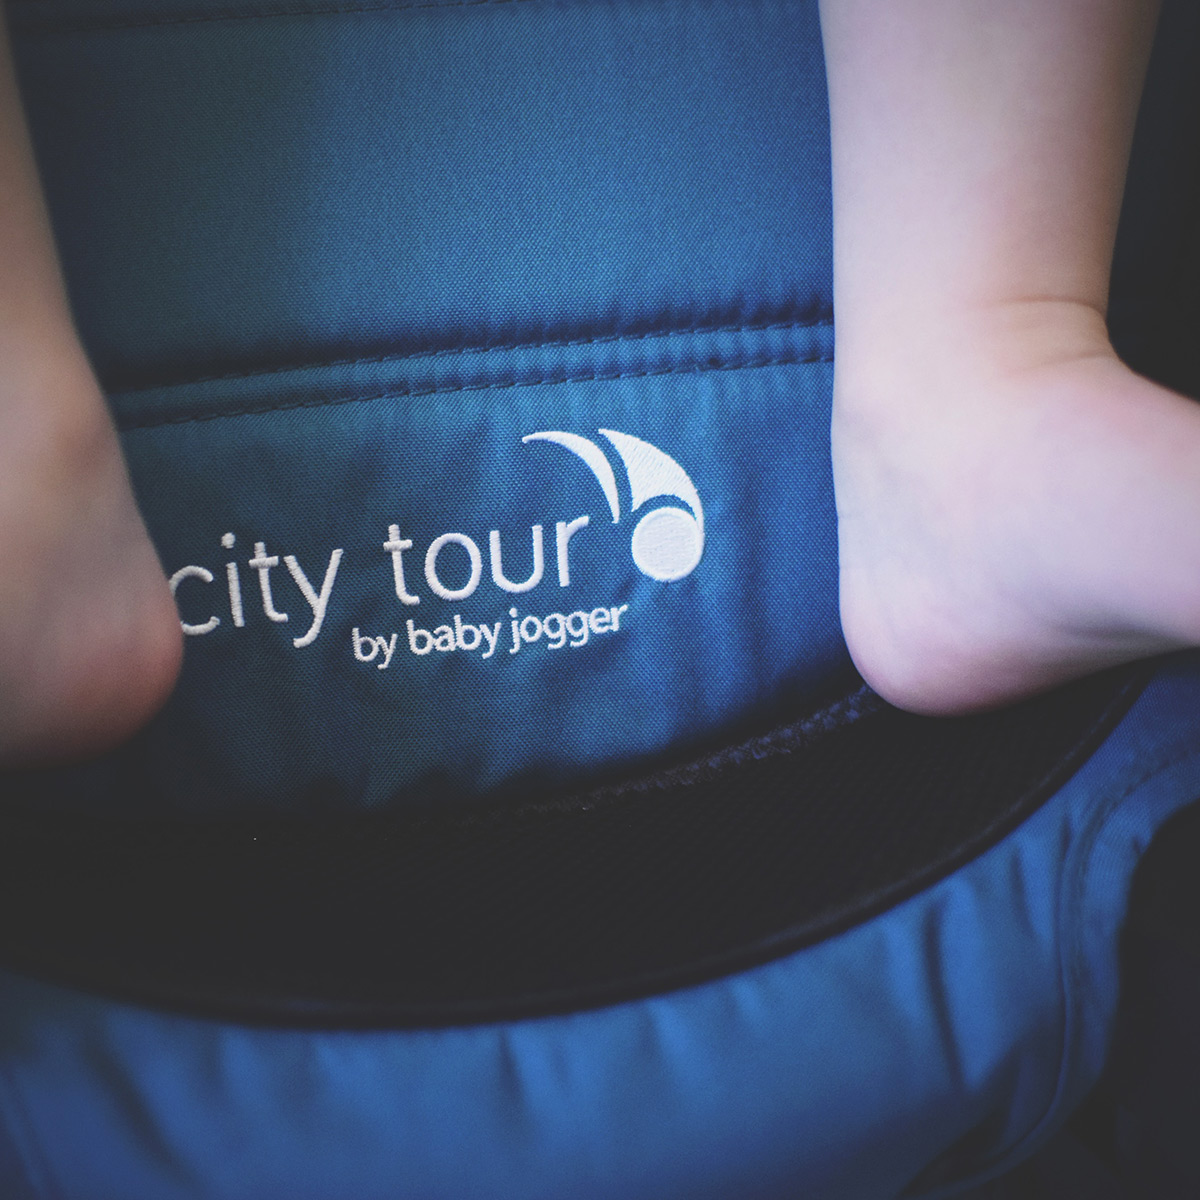 The Quick-Fold City Tour™ from Baby Jogger - The newest addition to the Baby Jogger range is the lightweight and compact, city tour™. Suitable for children from 6months to around 3 years, this nippy stroller is designed for daily adventures, weekend road trips and even far-away flights